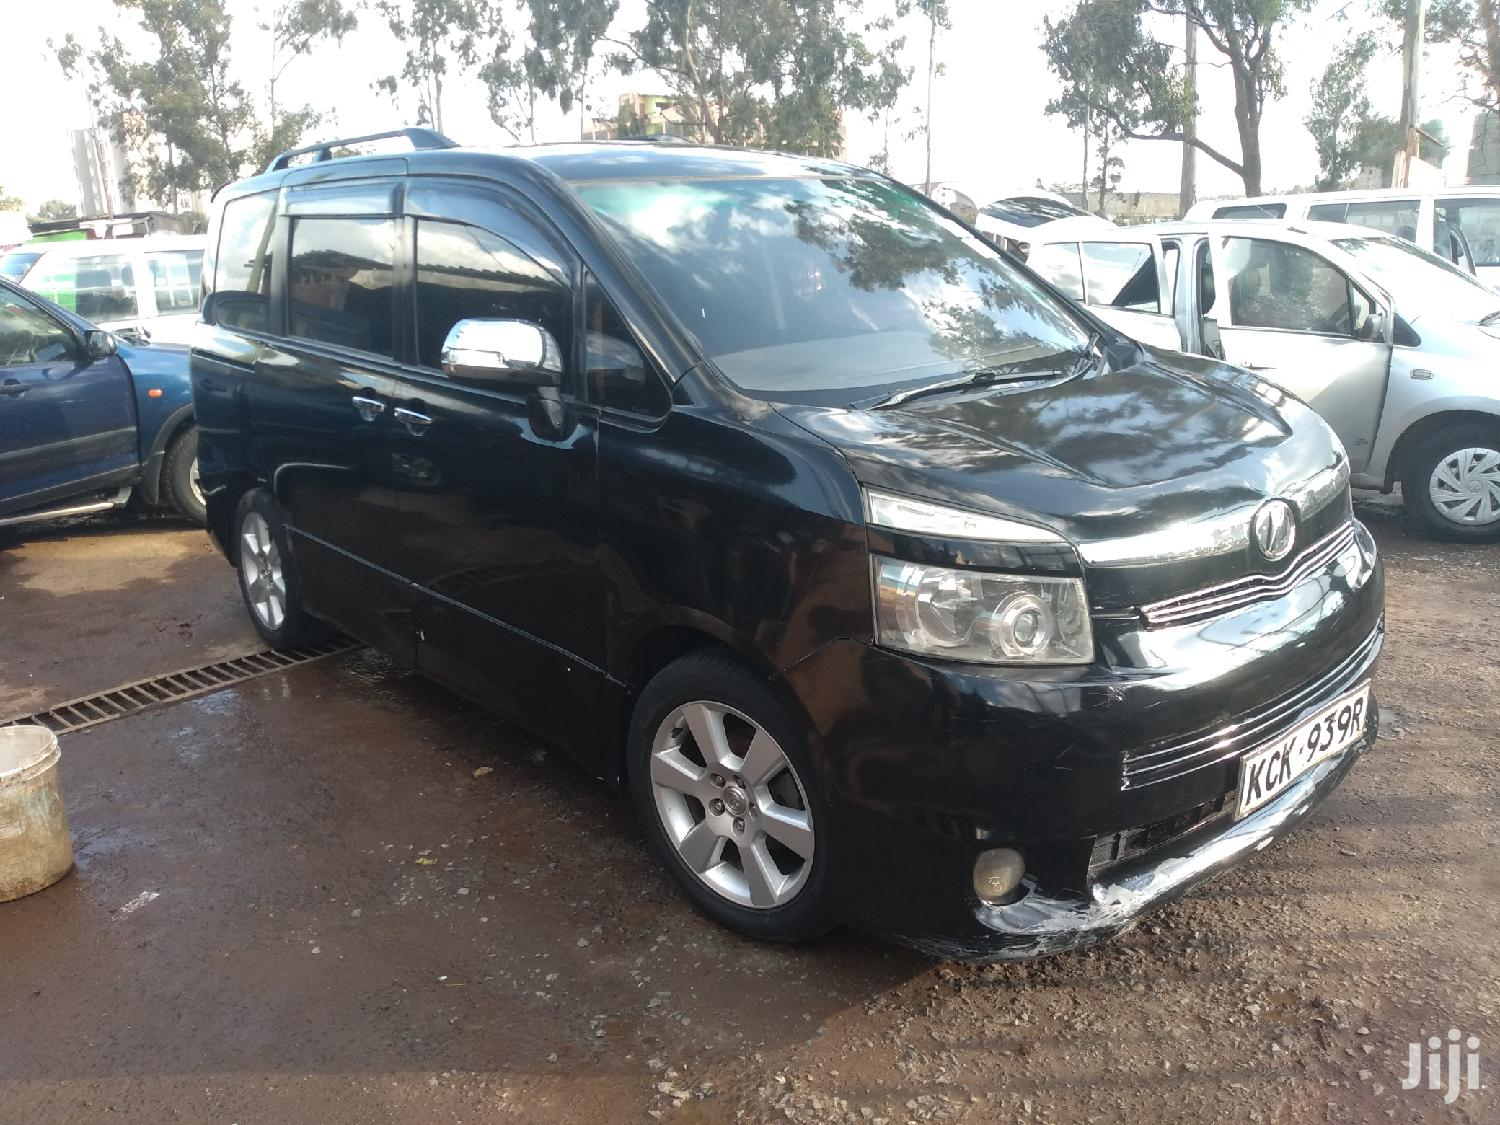 Toyota Voxy 2010 Black | Cars for sale in Nairobi Central, Nairobi, Kenya